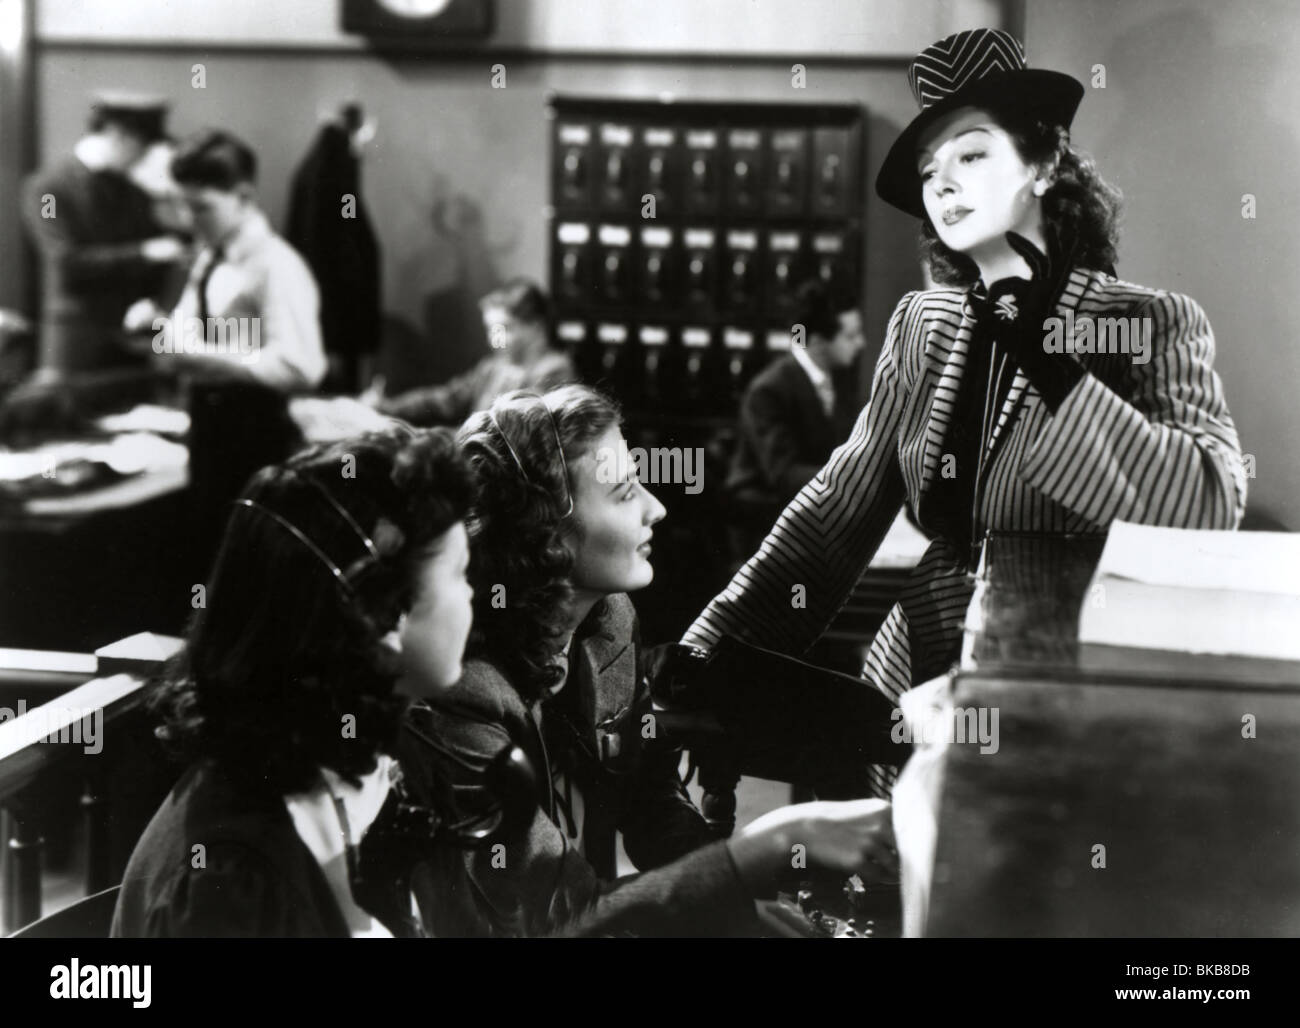 HIS GIRL FRIDAY (1940) ROSALIND RUSSELL HGFY 006P - Stock Image